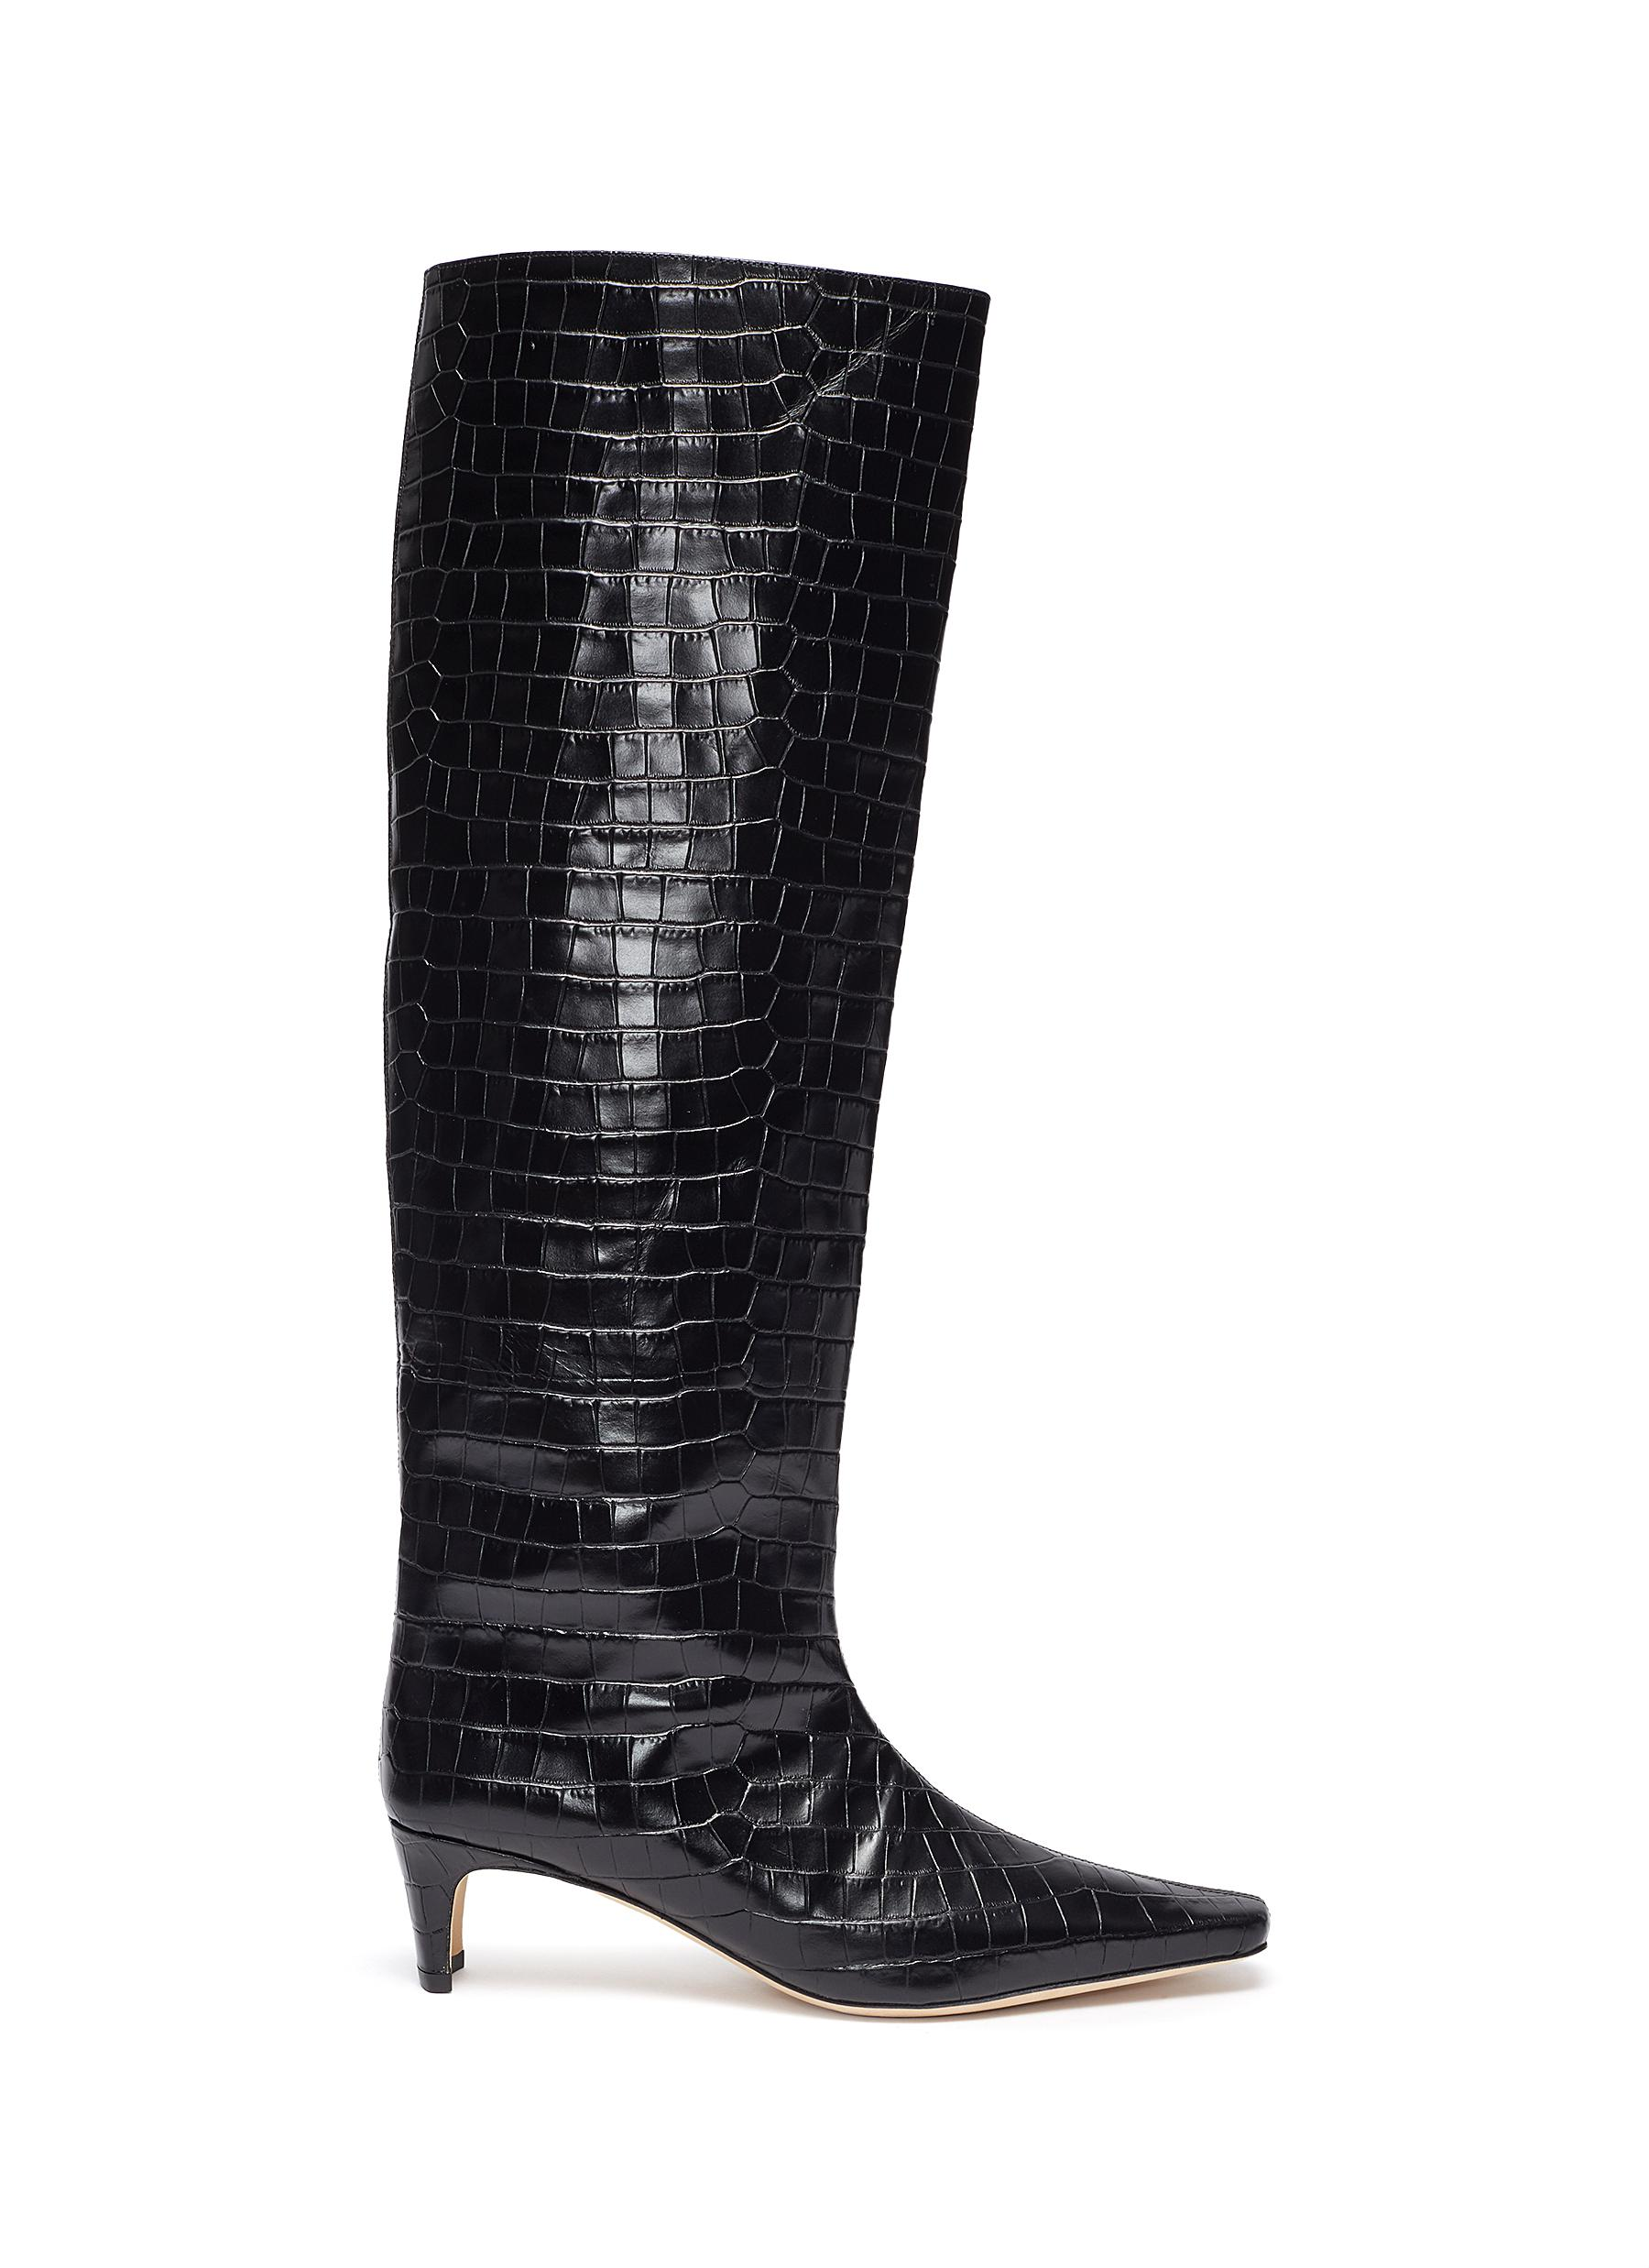 Staud 'WALLY' CROC EMBOSSED LEATHER BOOTS